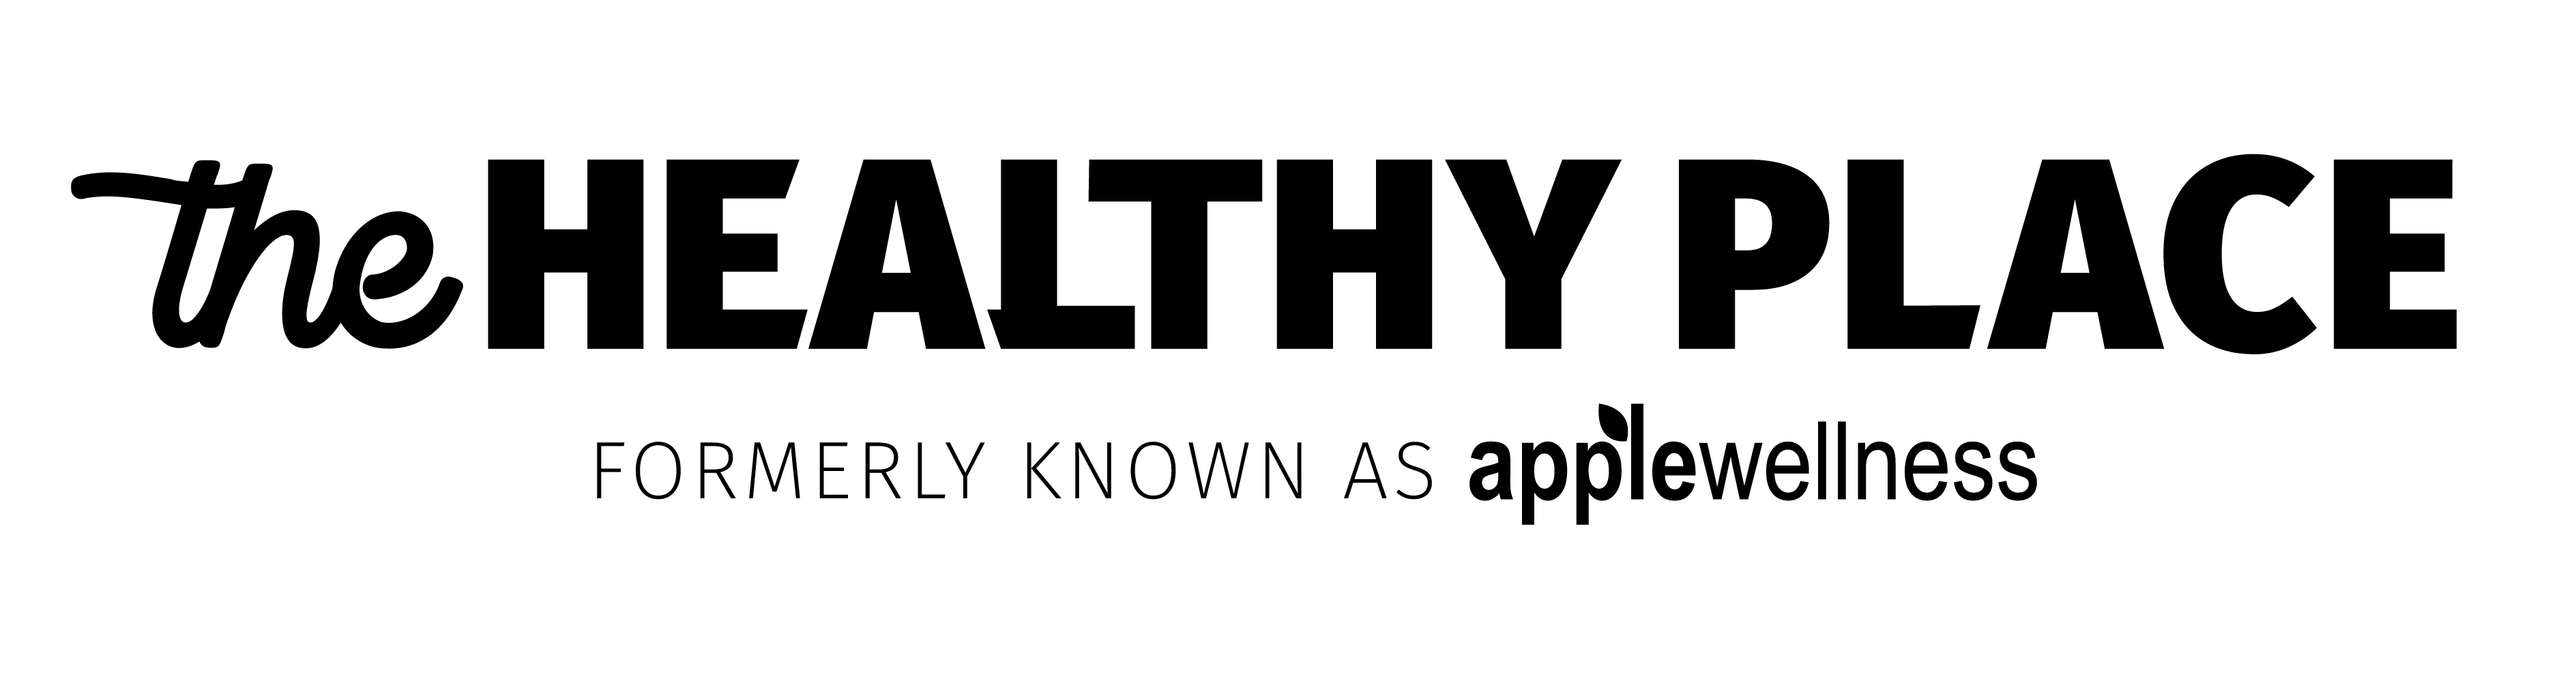 Thanks to The Healthy Place/Apple Wellness